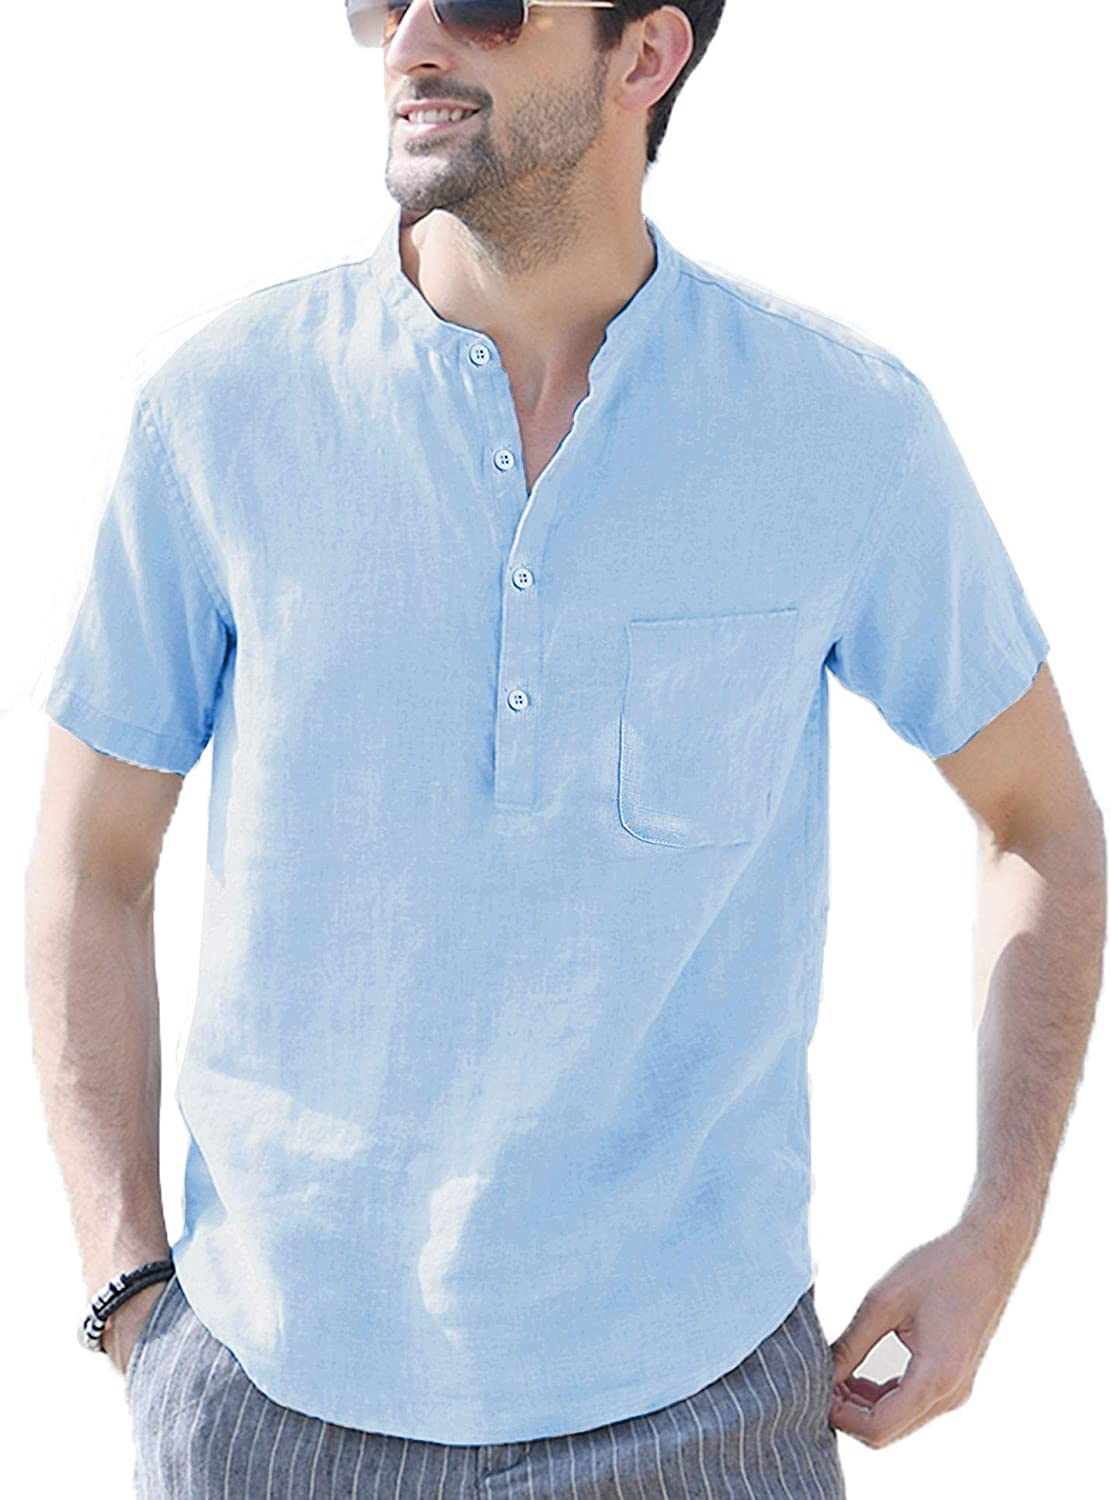 LecGee Mens Cotton Linen Henley Shirt Short Sleeve Hippie Casual Beach T Shirts with Pocket